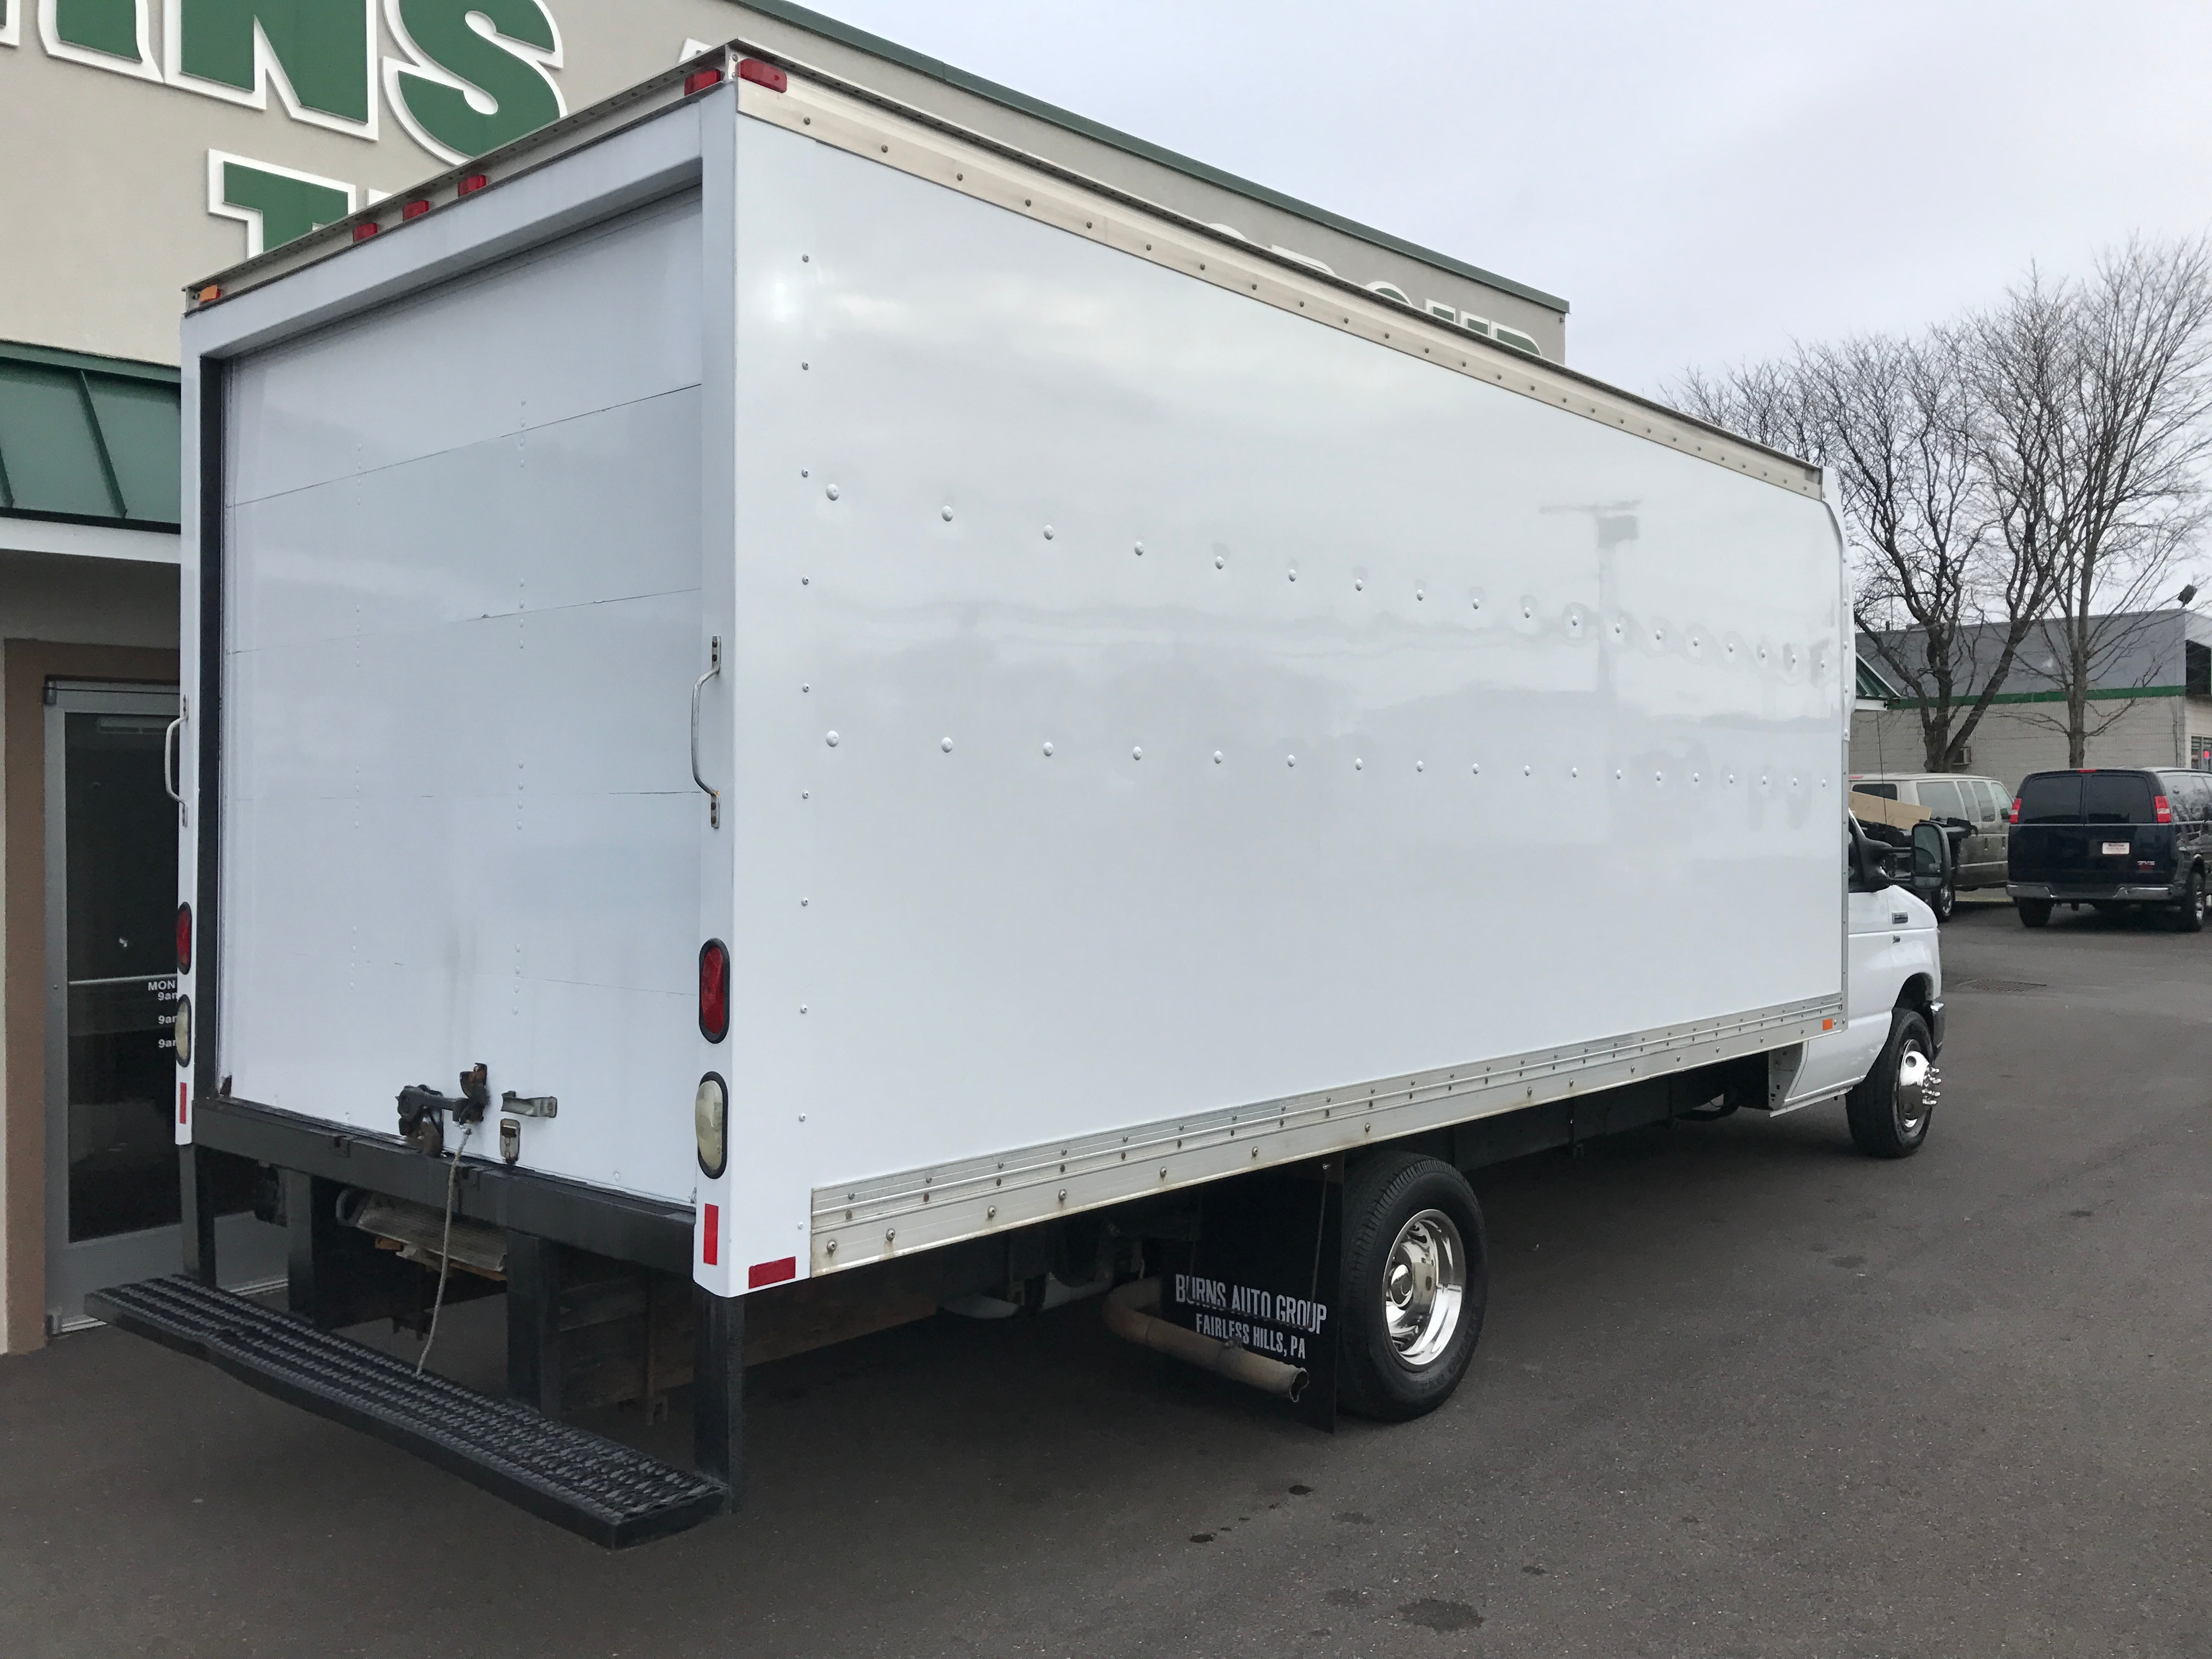 quailty new and used trucks trailers equipment and parts for sale. Black Bedroom Furniture Sets. Home Design Ideas